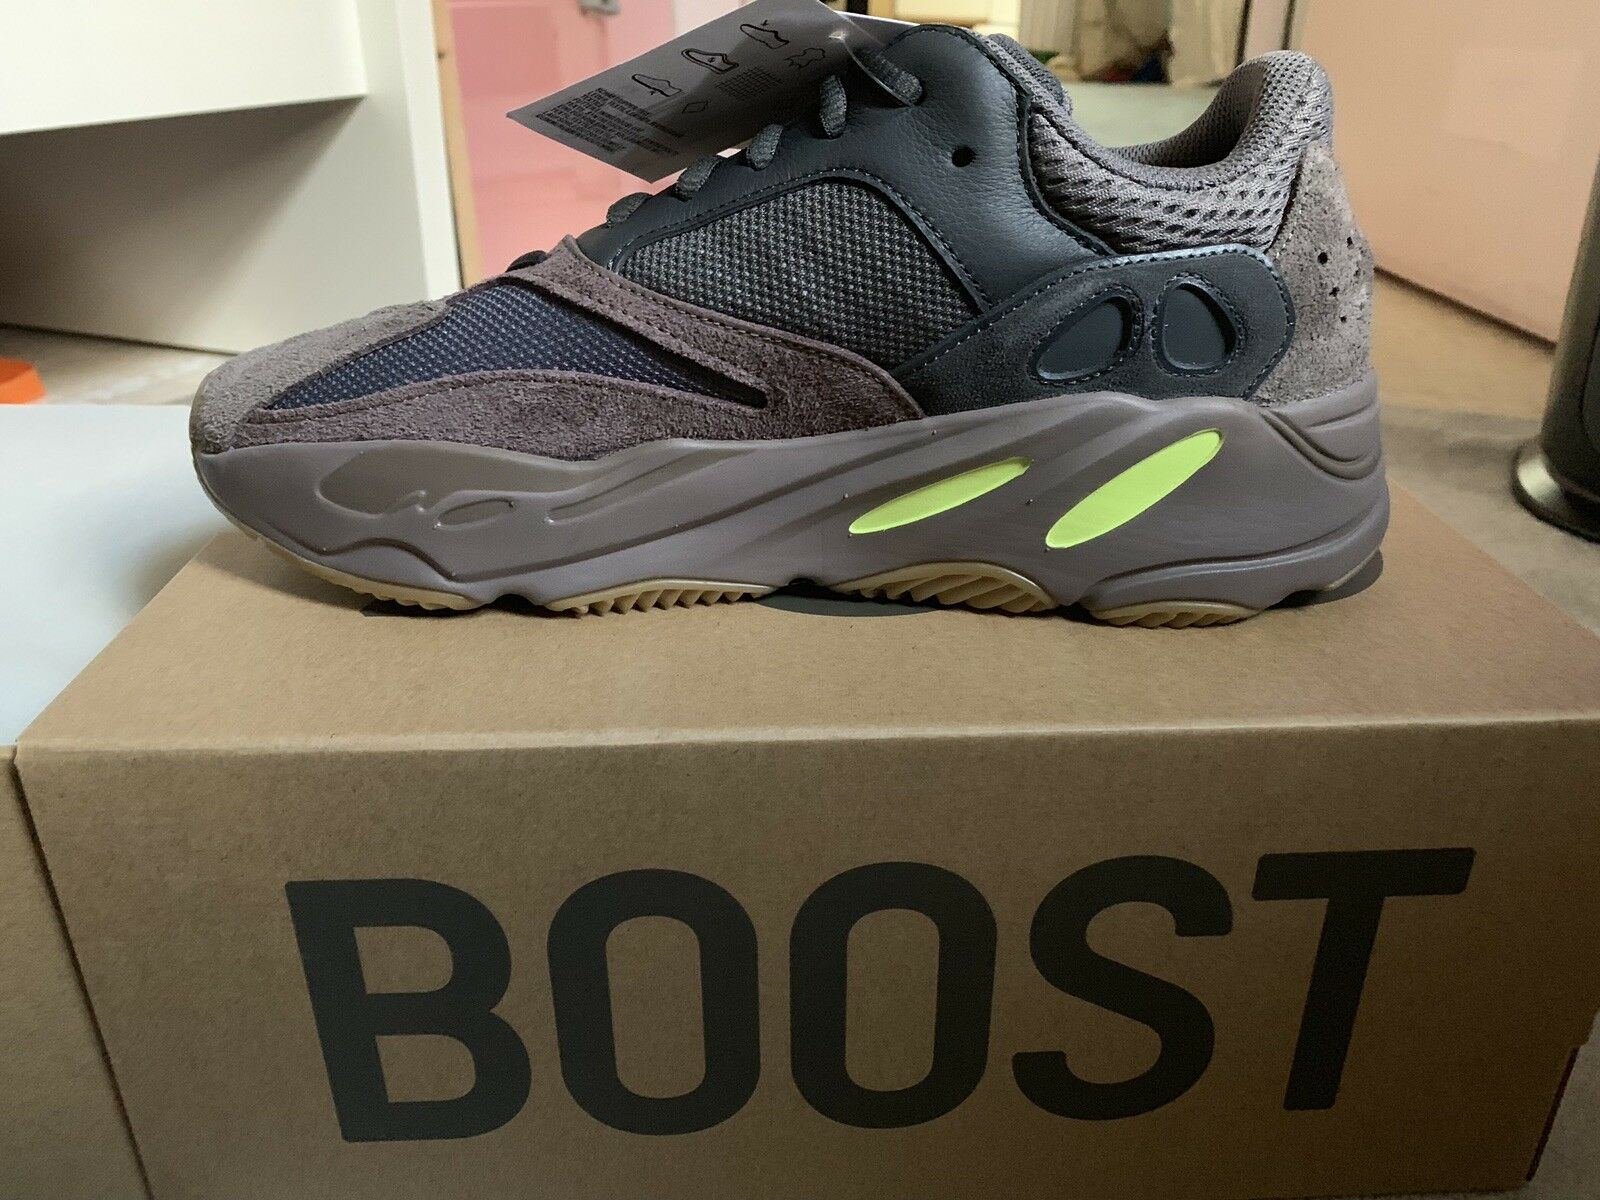 Adidas Yeezy Boost 700 Wave Runner Mauve - SIZE US 10 - READY TO SHIP